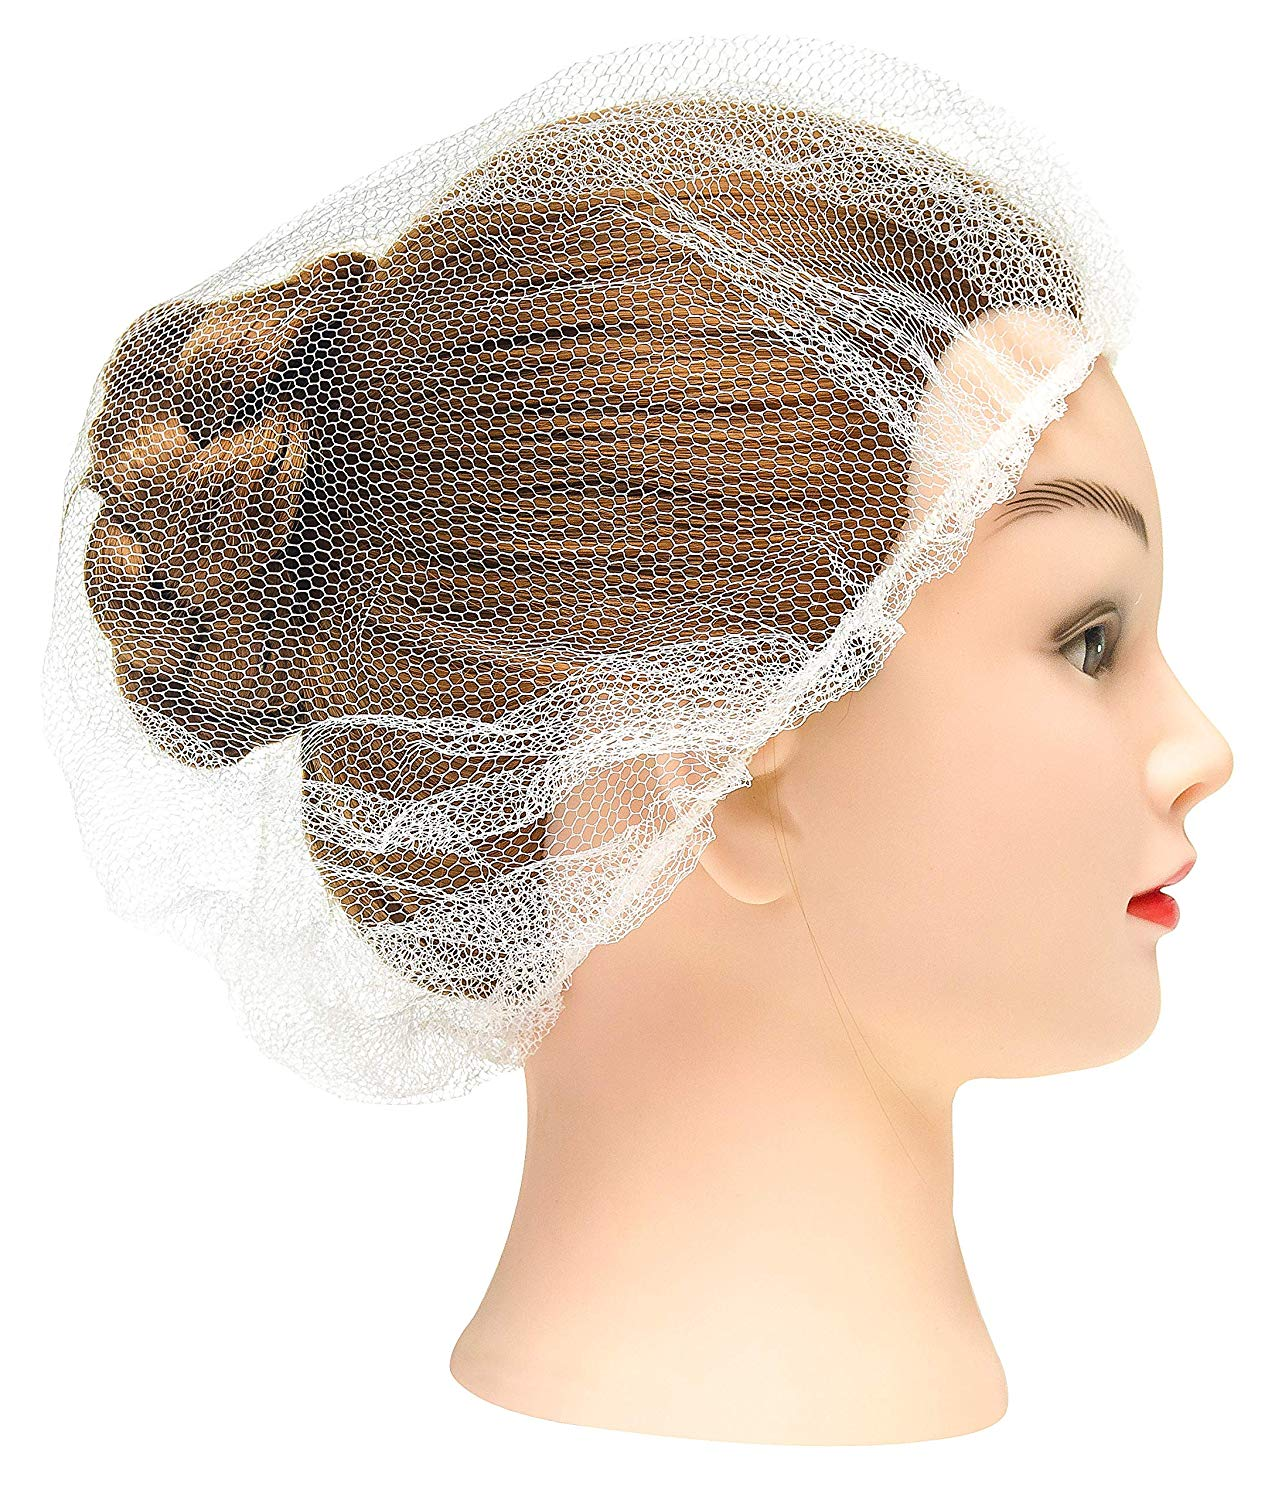 274841cb11f Disposable white hairnets. Protective Hair Nets